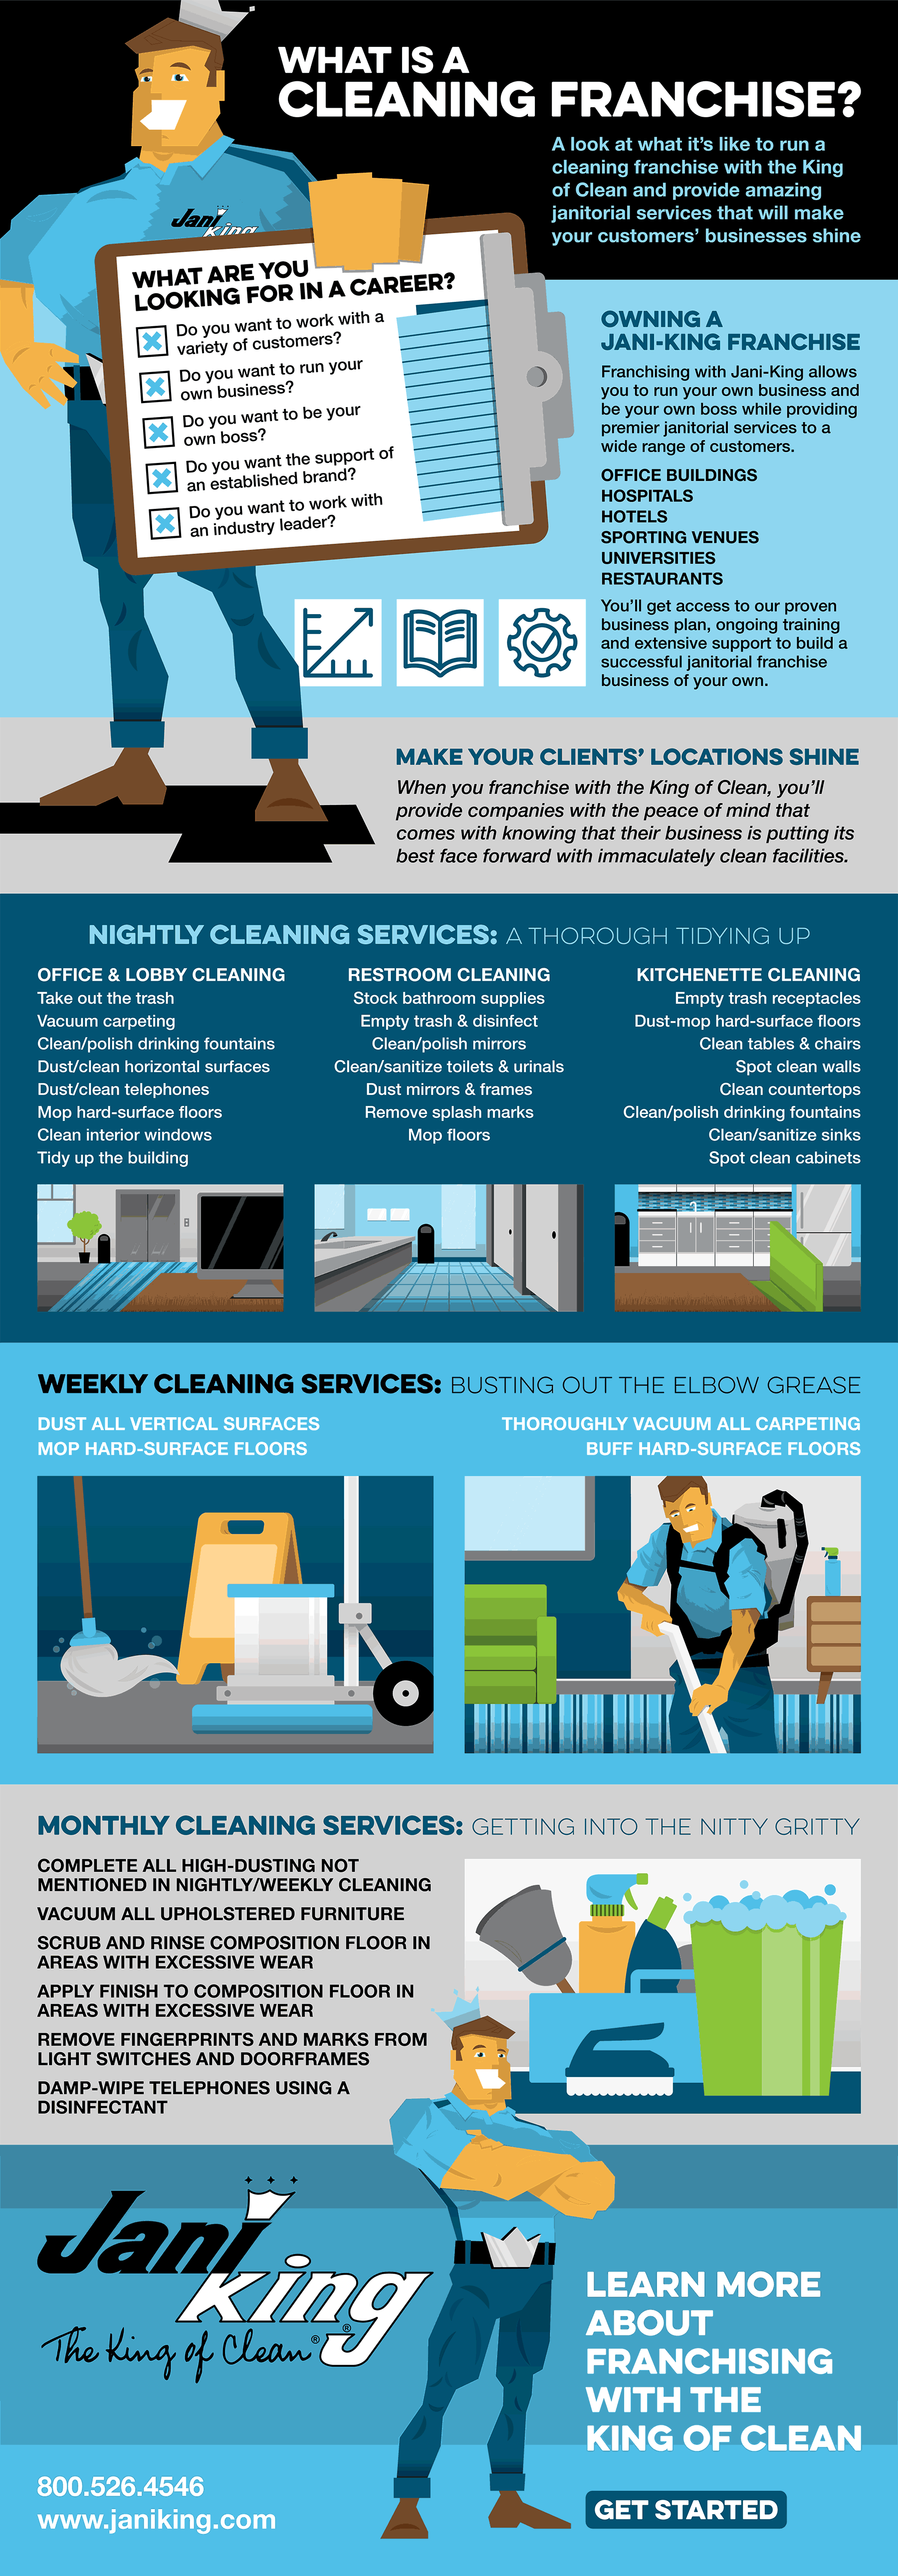 What-is-a-cleaning-franchise